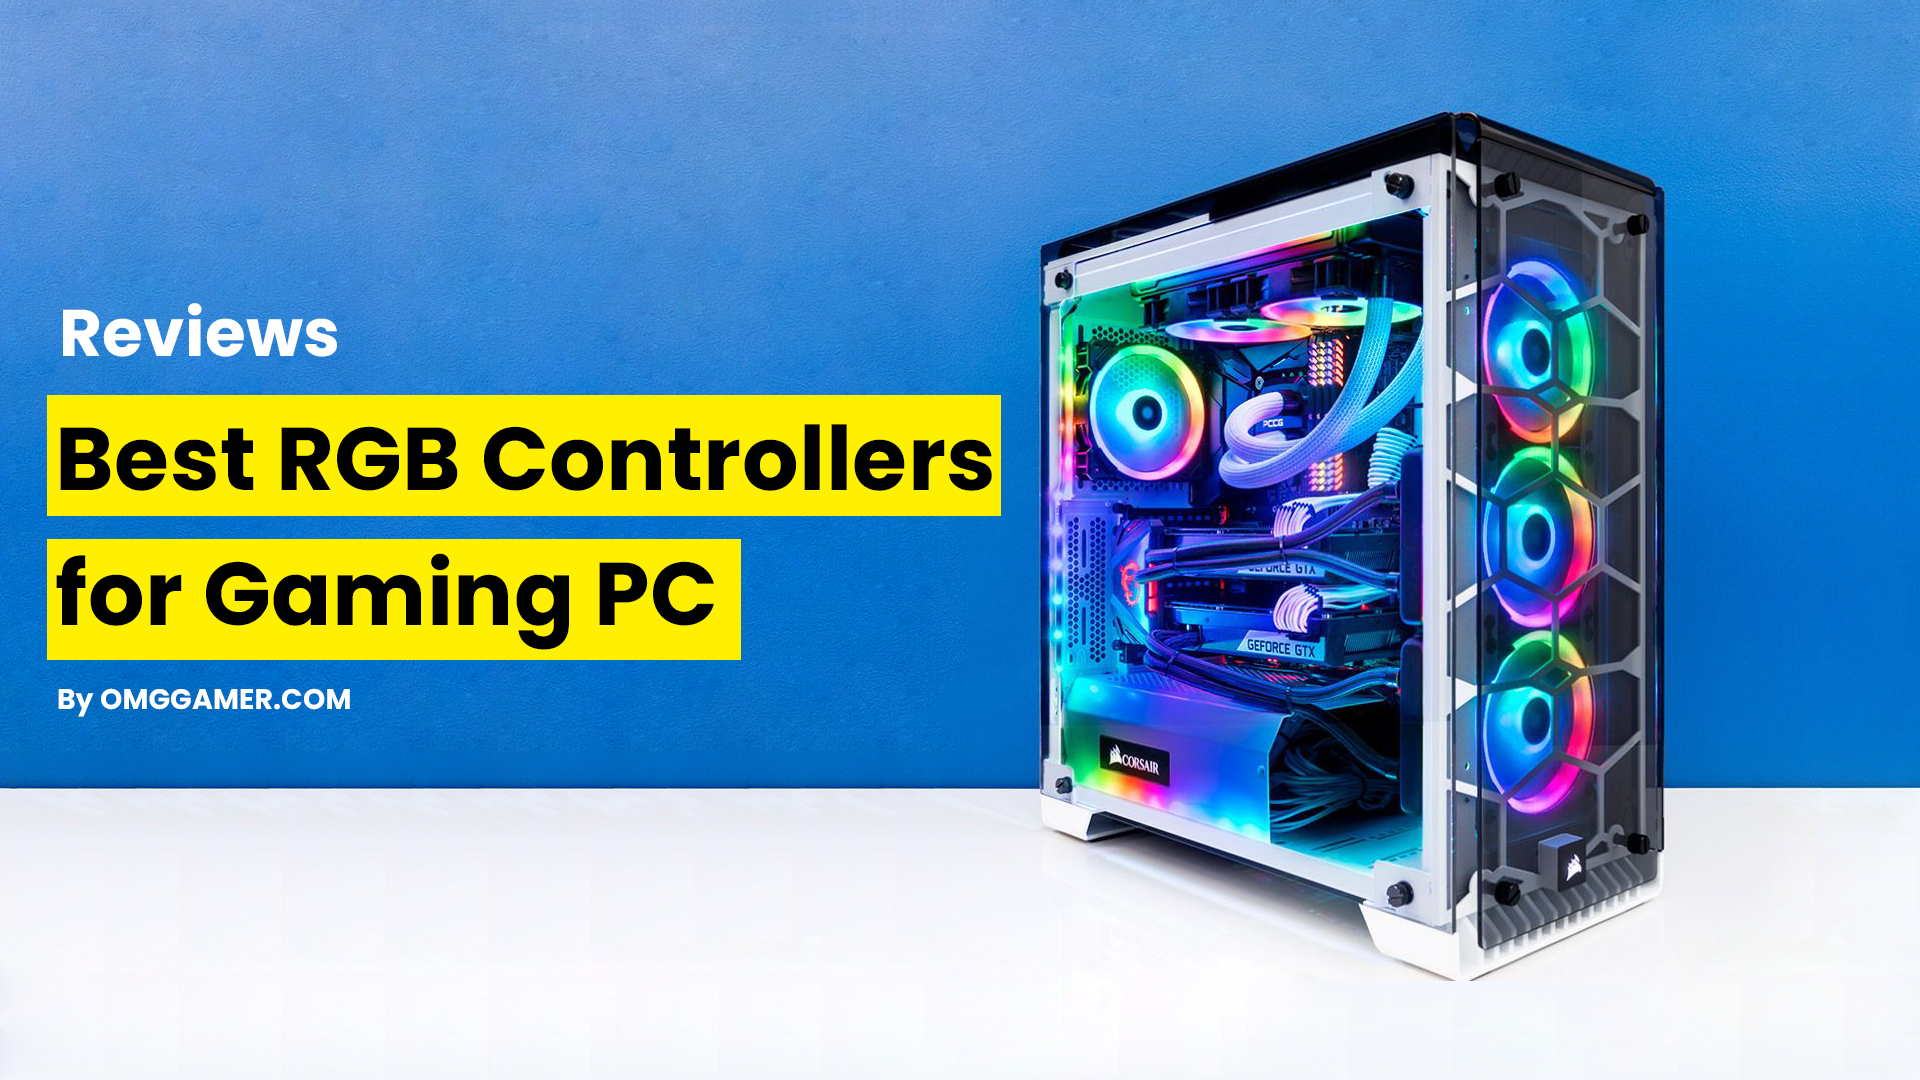 BEST-RGB-Controllers-for-Gaming-PC